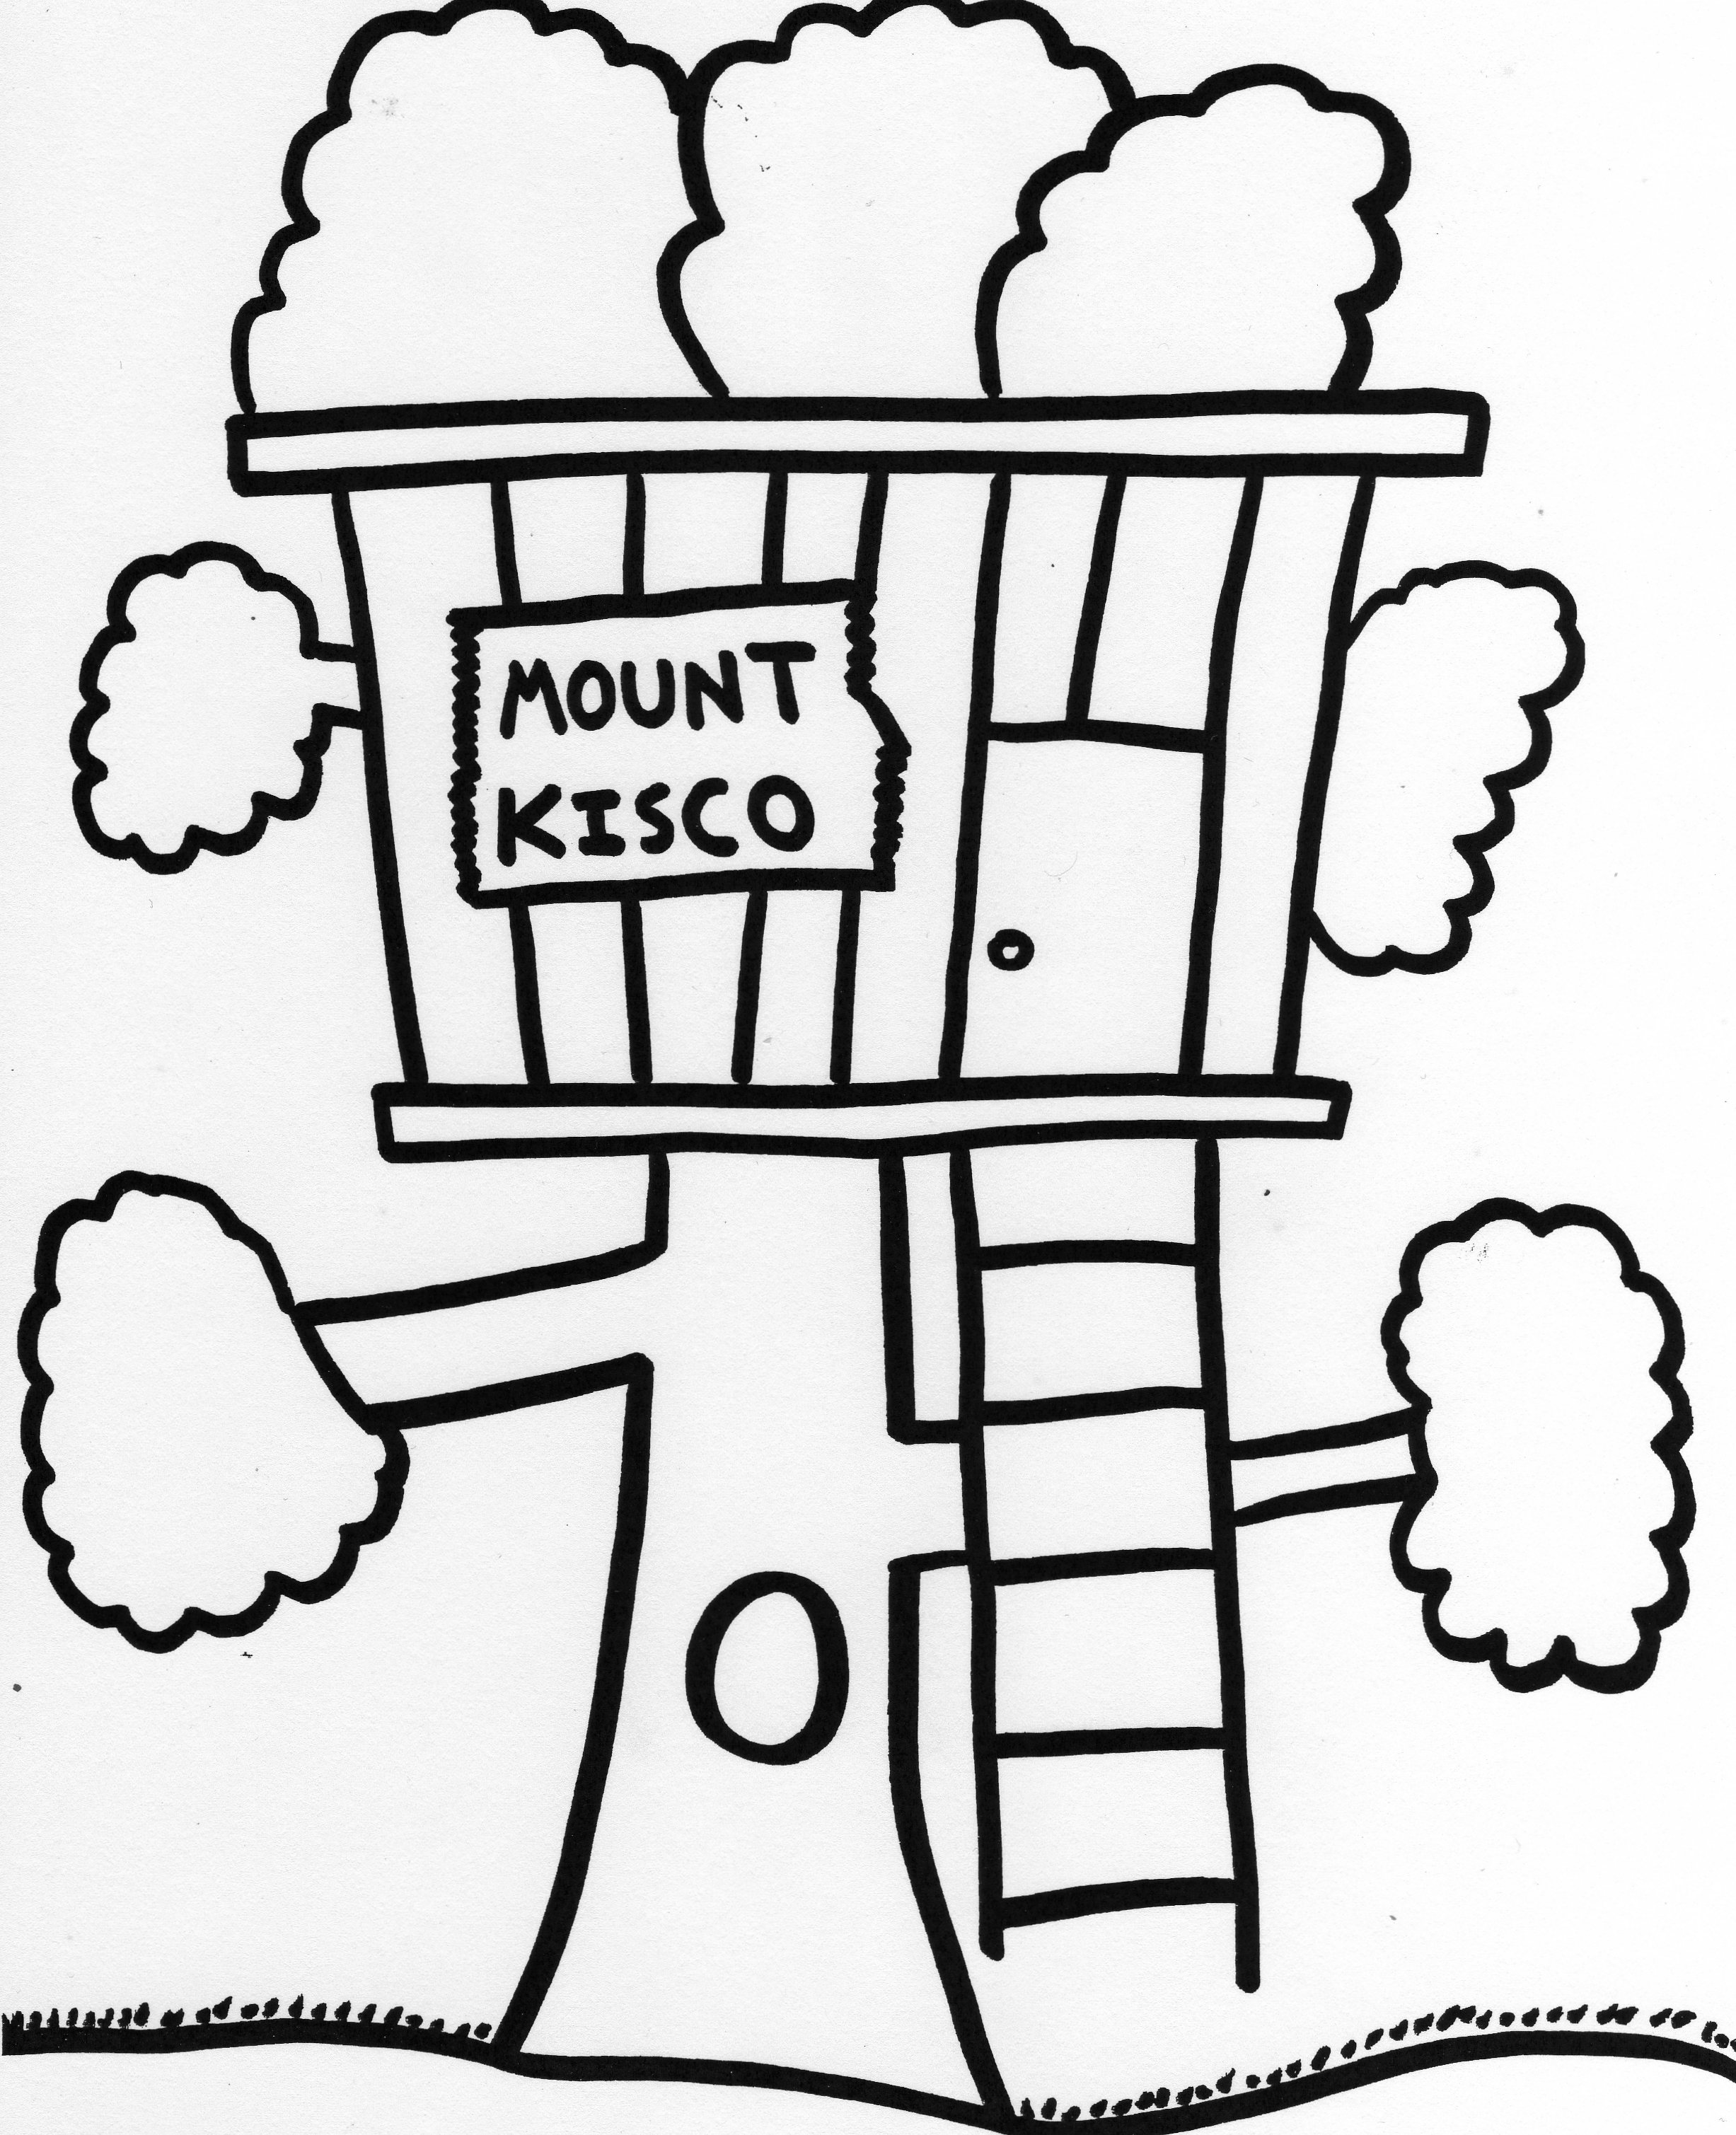 bgc coloring sheet collection u002707 u002708 u2013 westcheddar